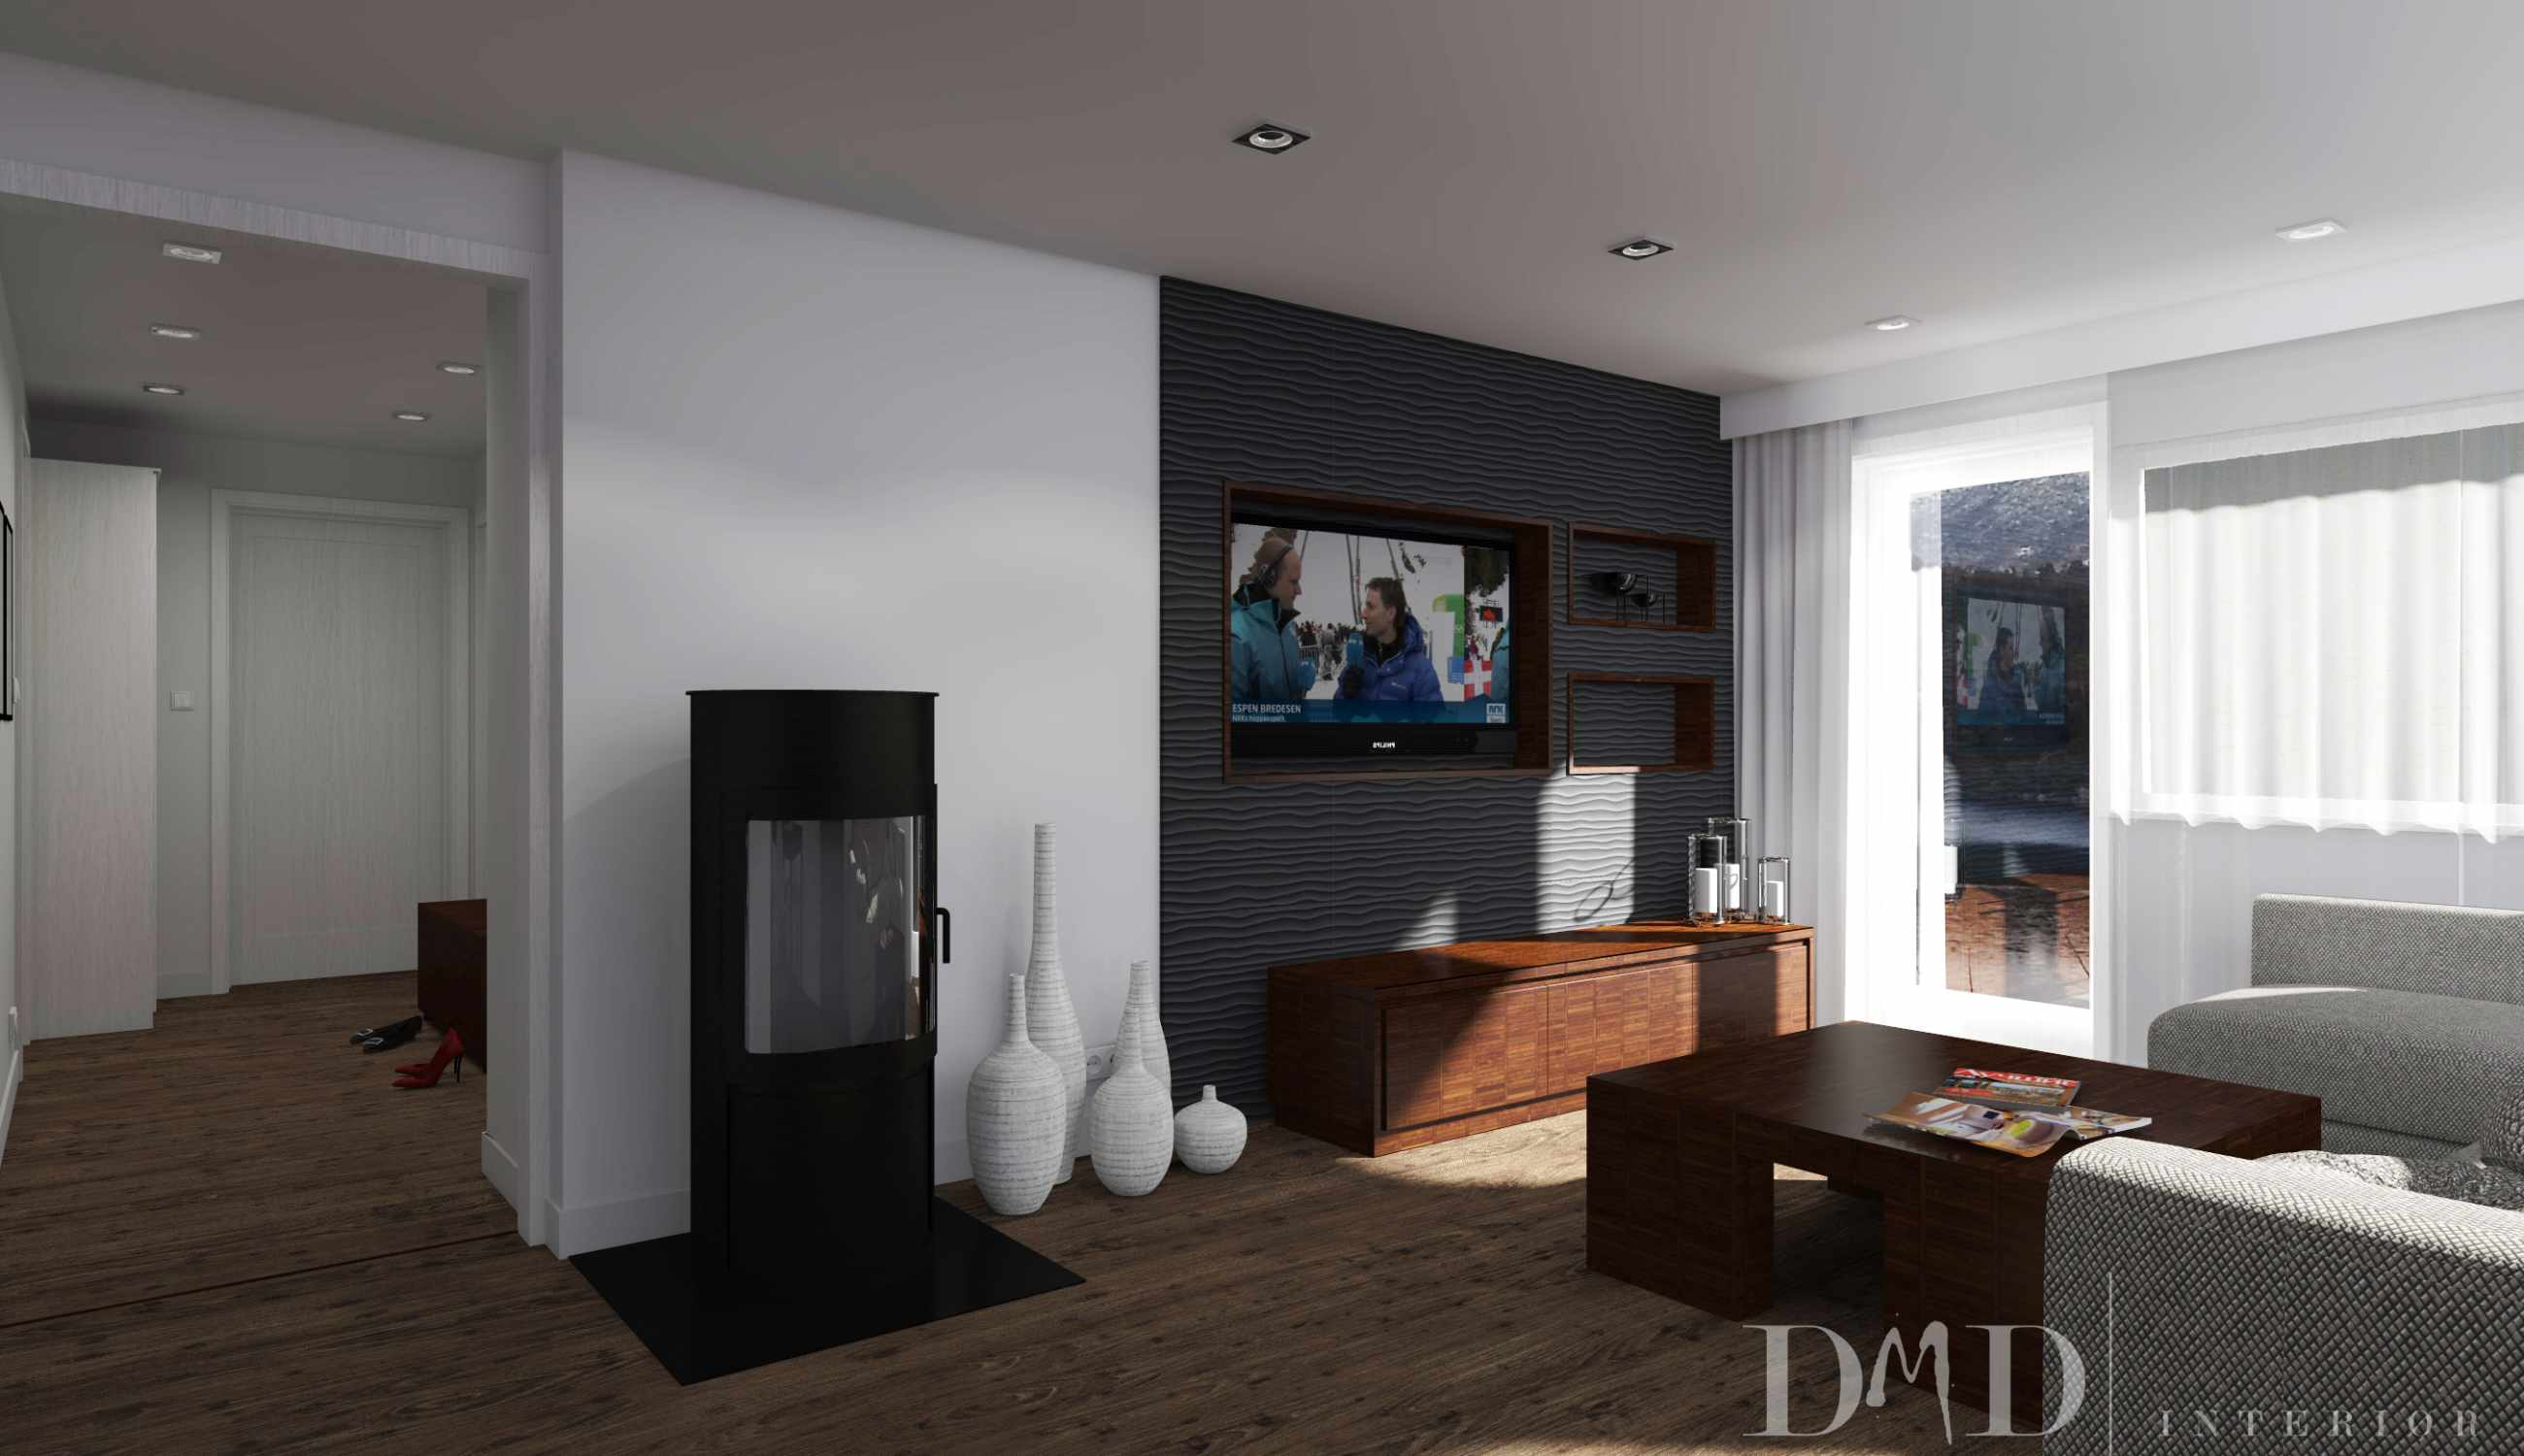 Dmd Interior Design - Bergen